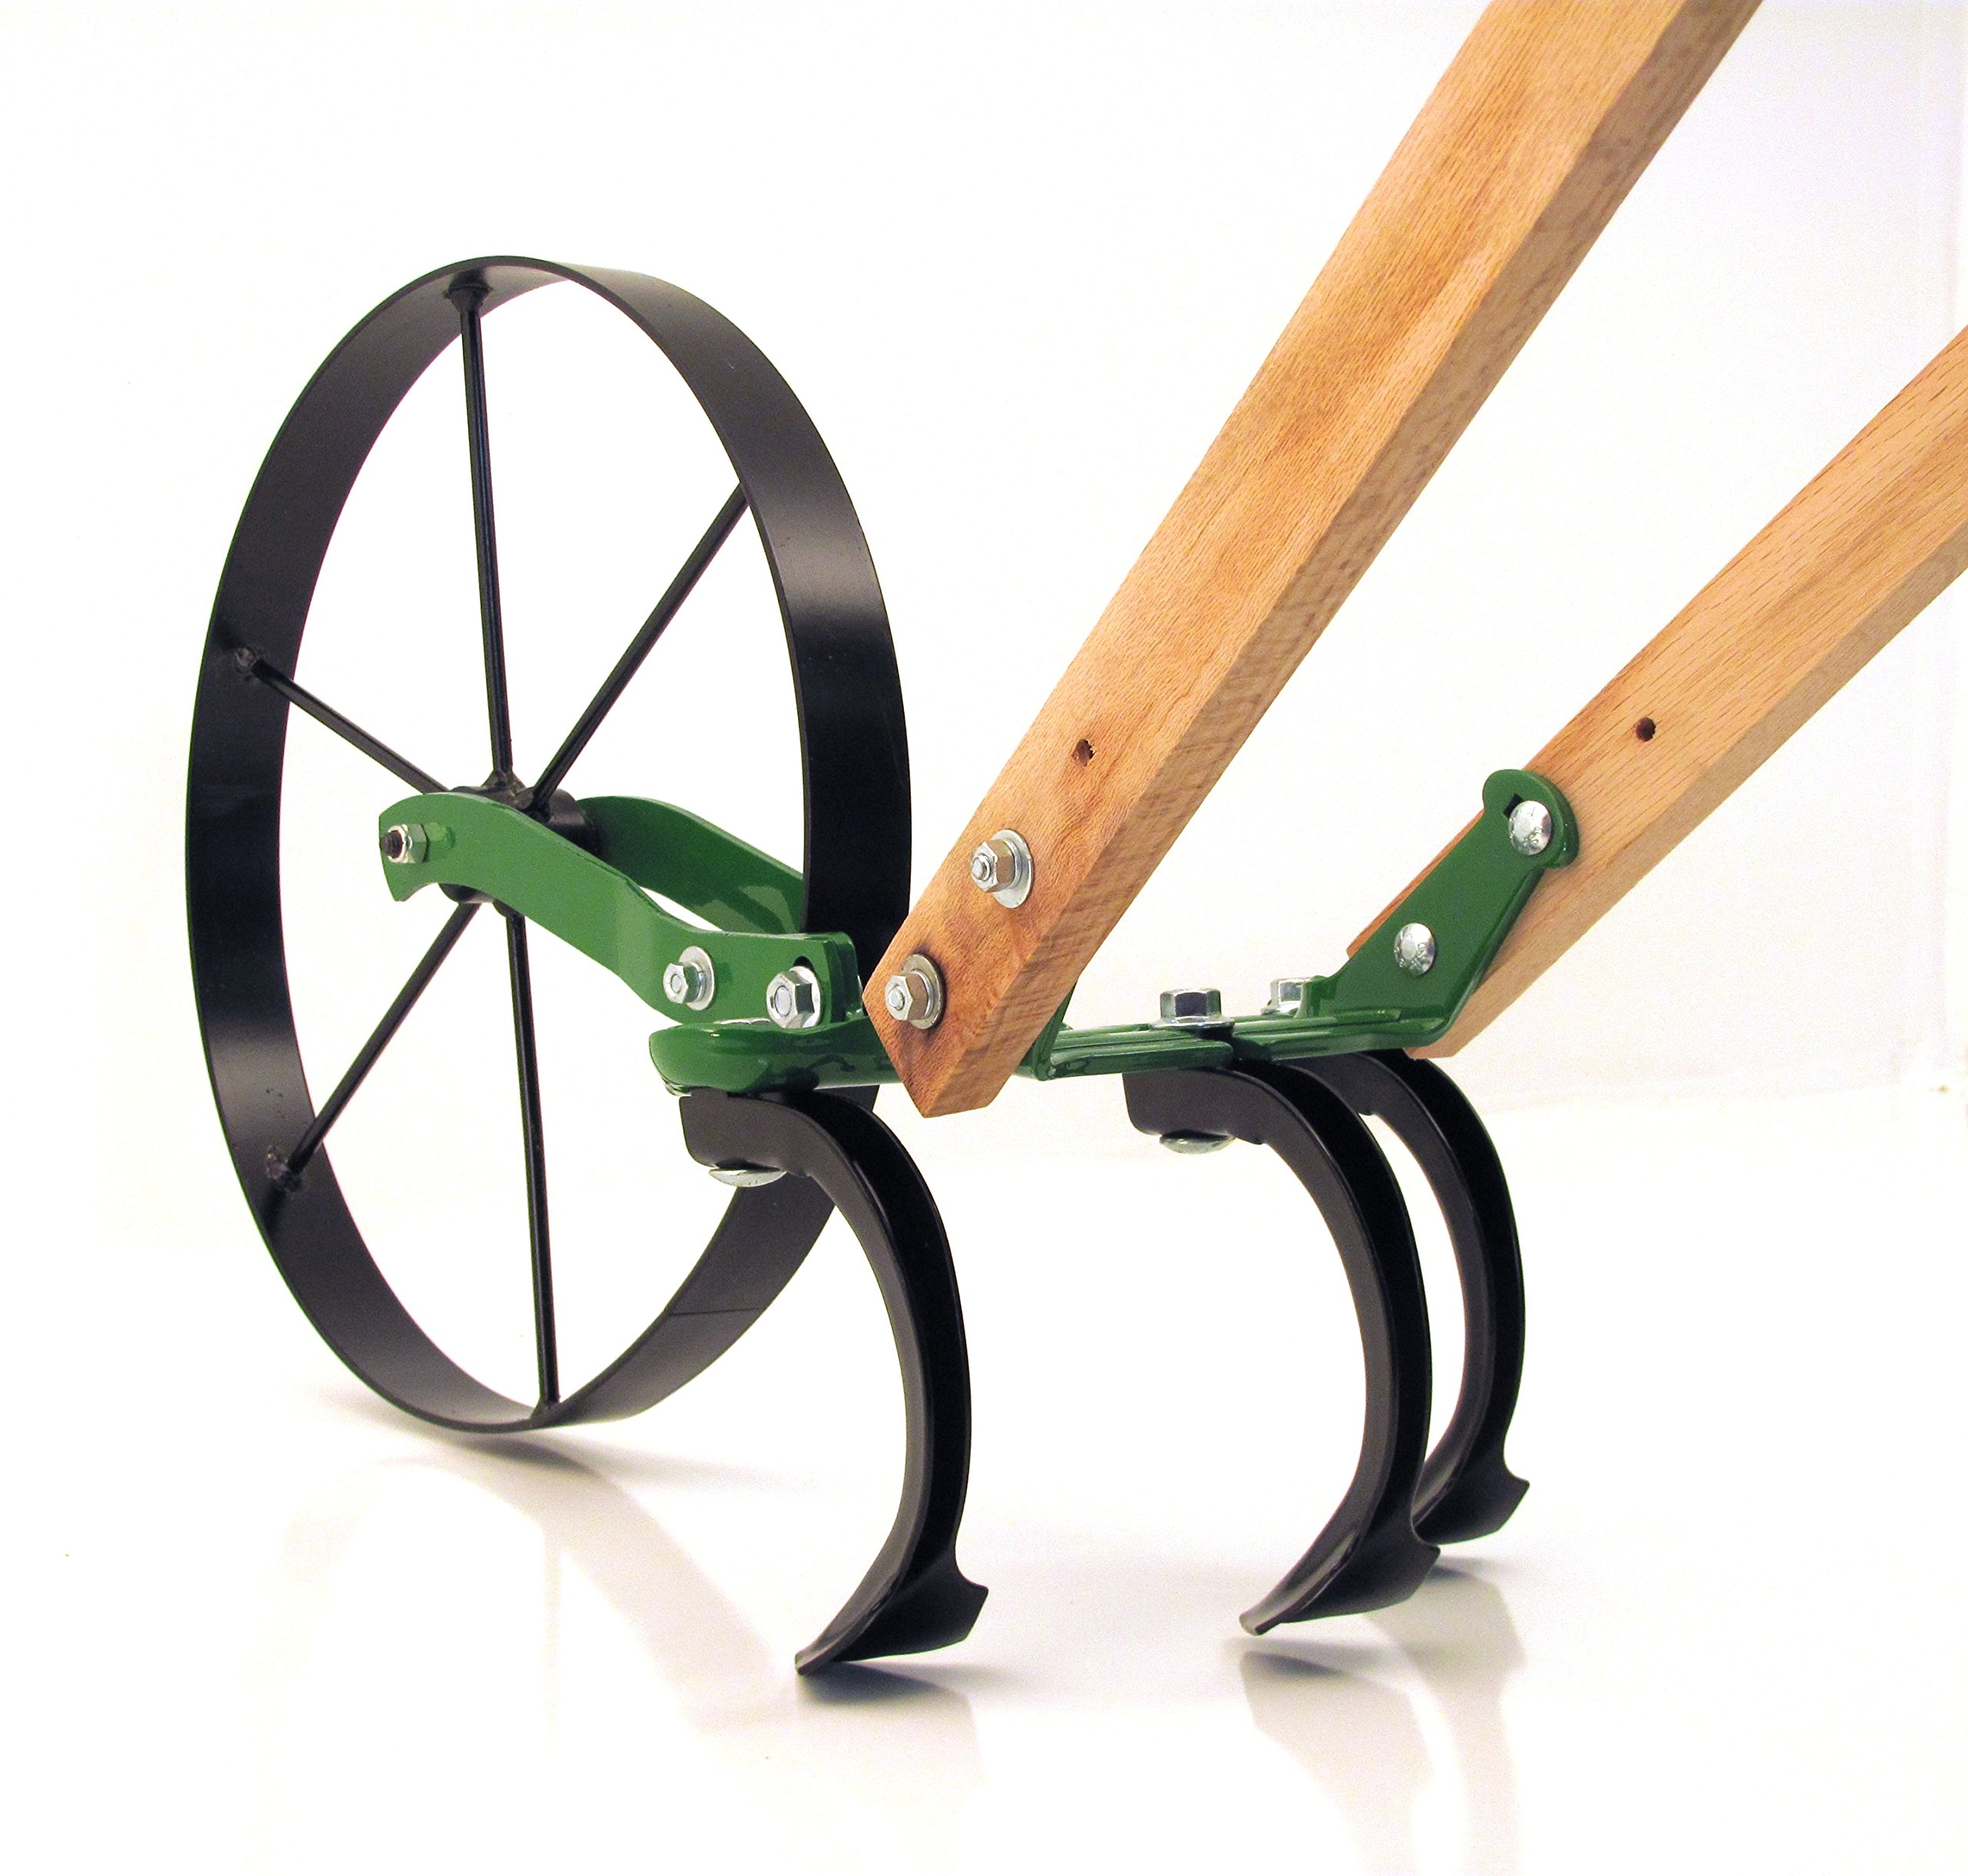 Hoss Single Wheel Hoe by Hoss Tools